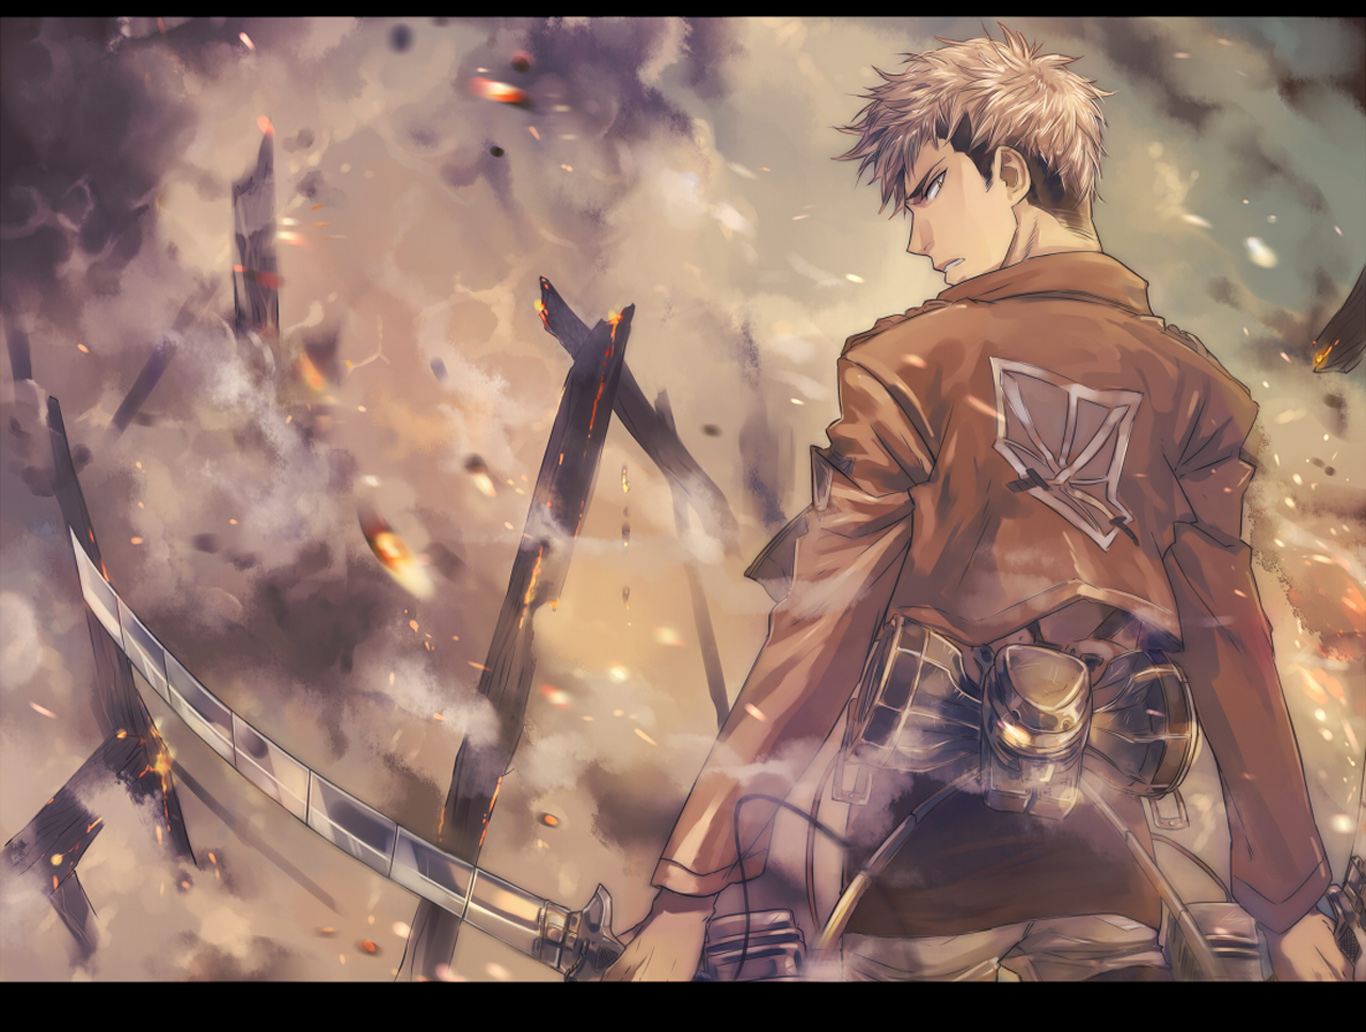 Aot Wallpapers Attack On Titan Jean Fighting 470087 Hd Wallpaper Backgrounds Download